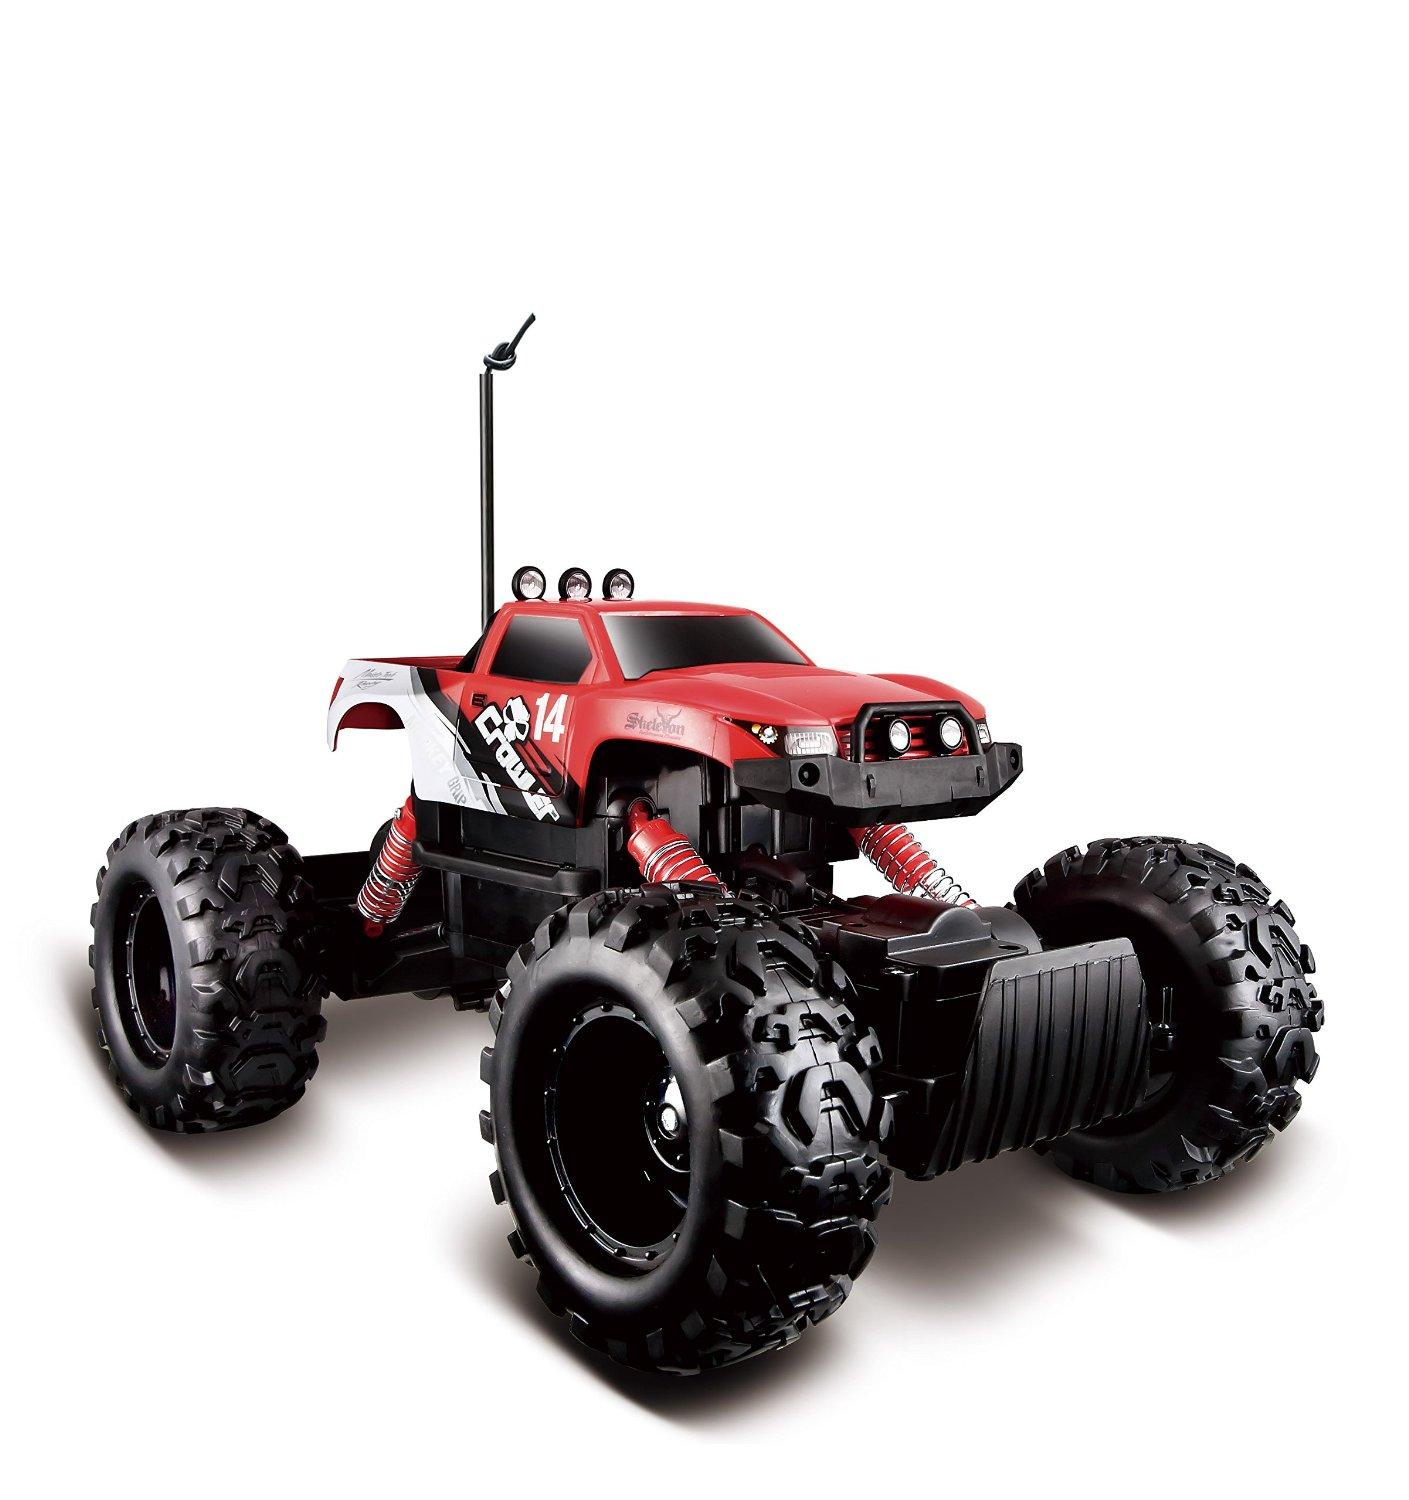 Lowest Price Ever! Maisto R/C Rock Crawler Radio Control Vehicle